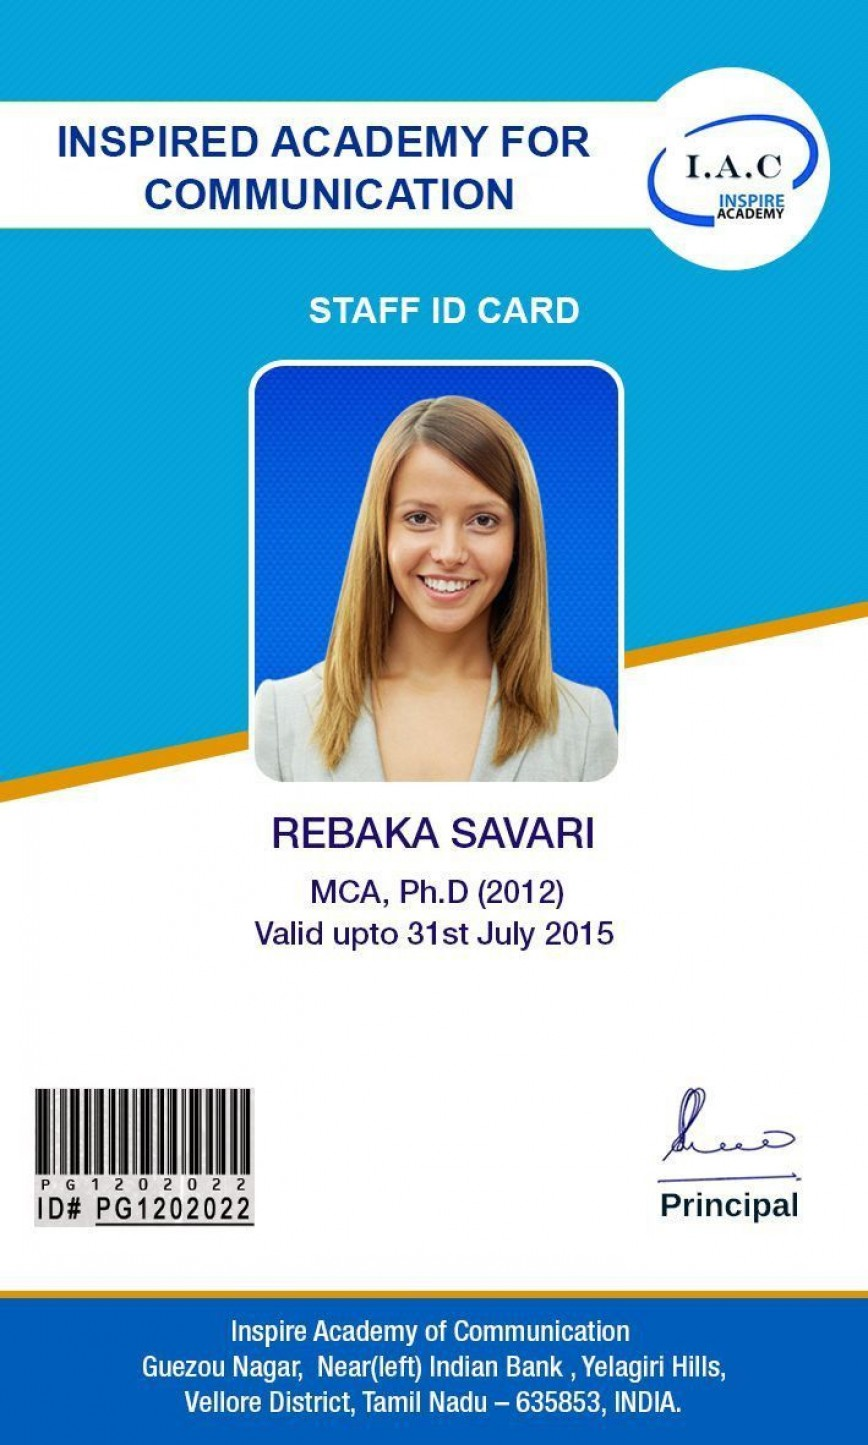 004 Archaicawful Student Id Card Template Picture  Psd Free School Microsoft Word Download868